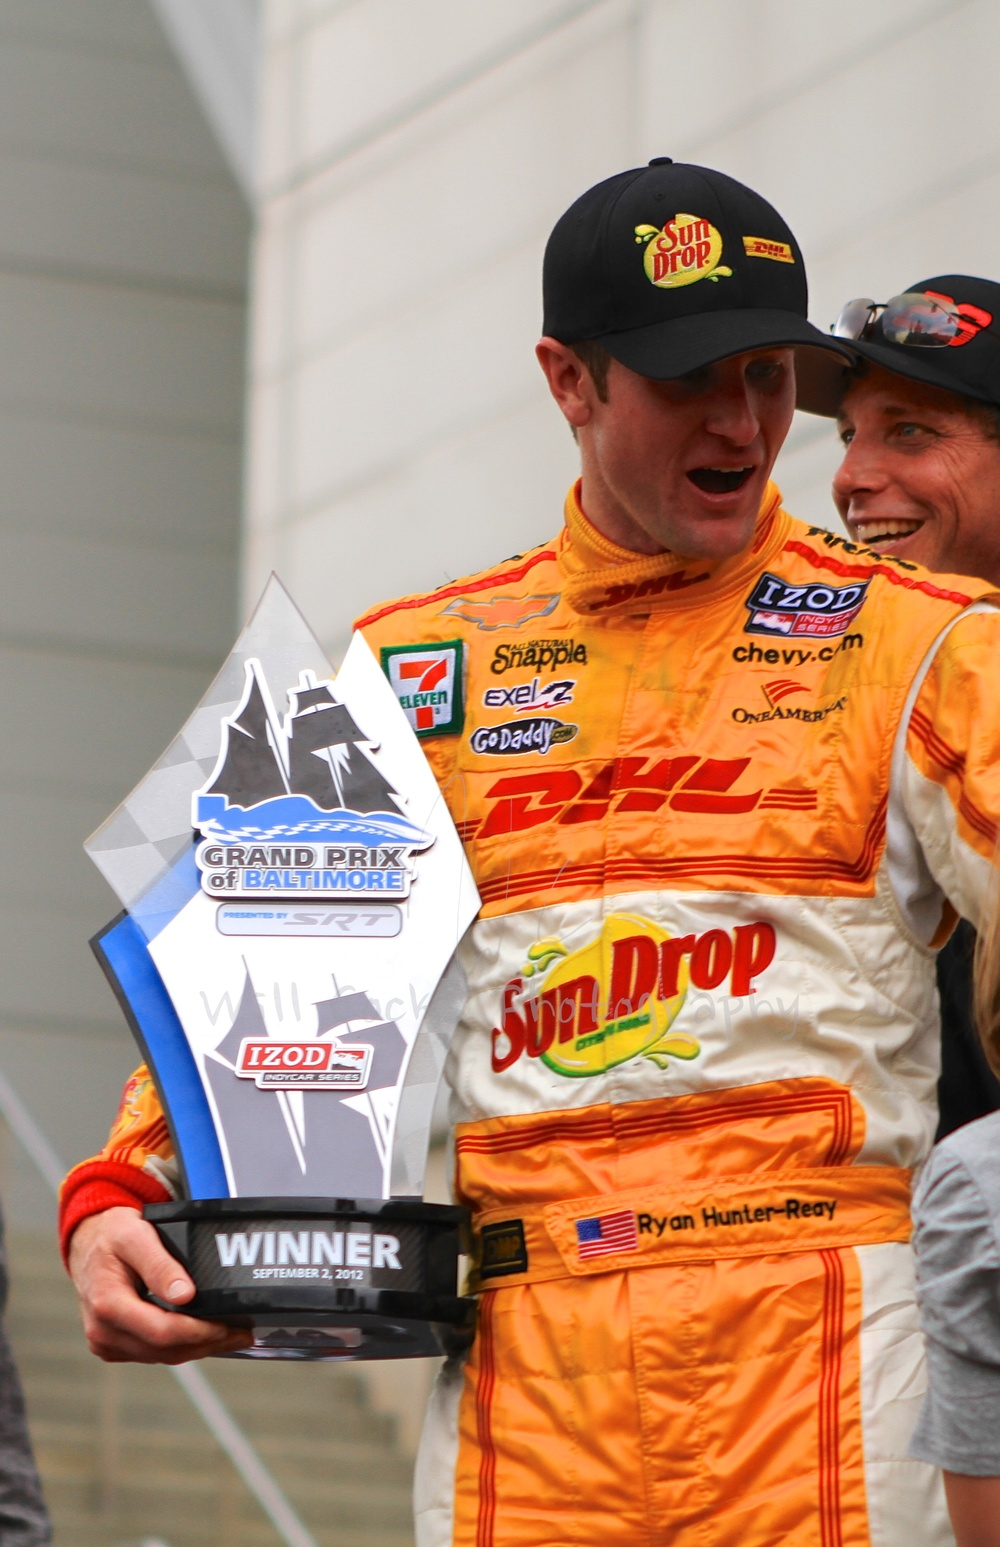 Ryan Hunter-Reay on stage with the Winner Trophy at the Grand Prix of Baltimore